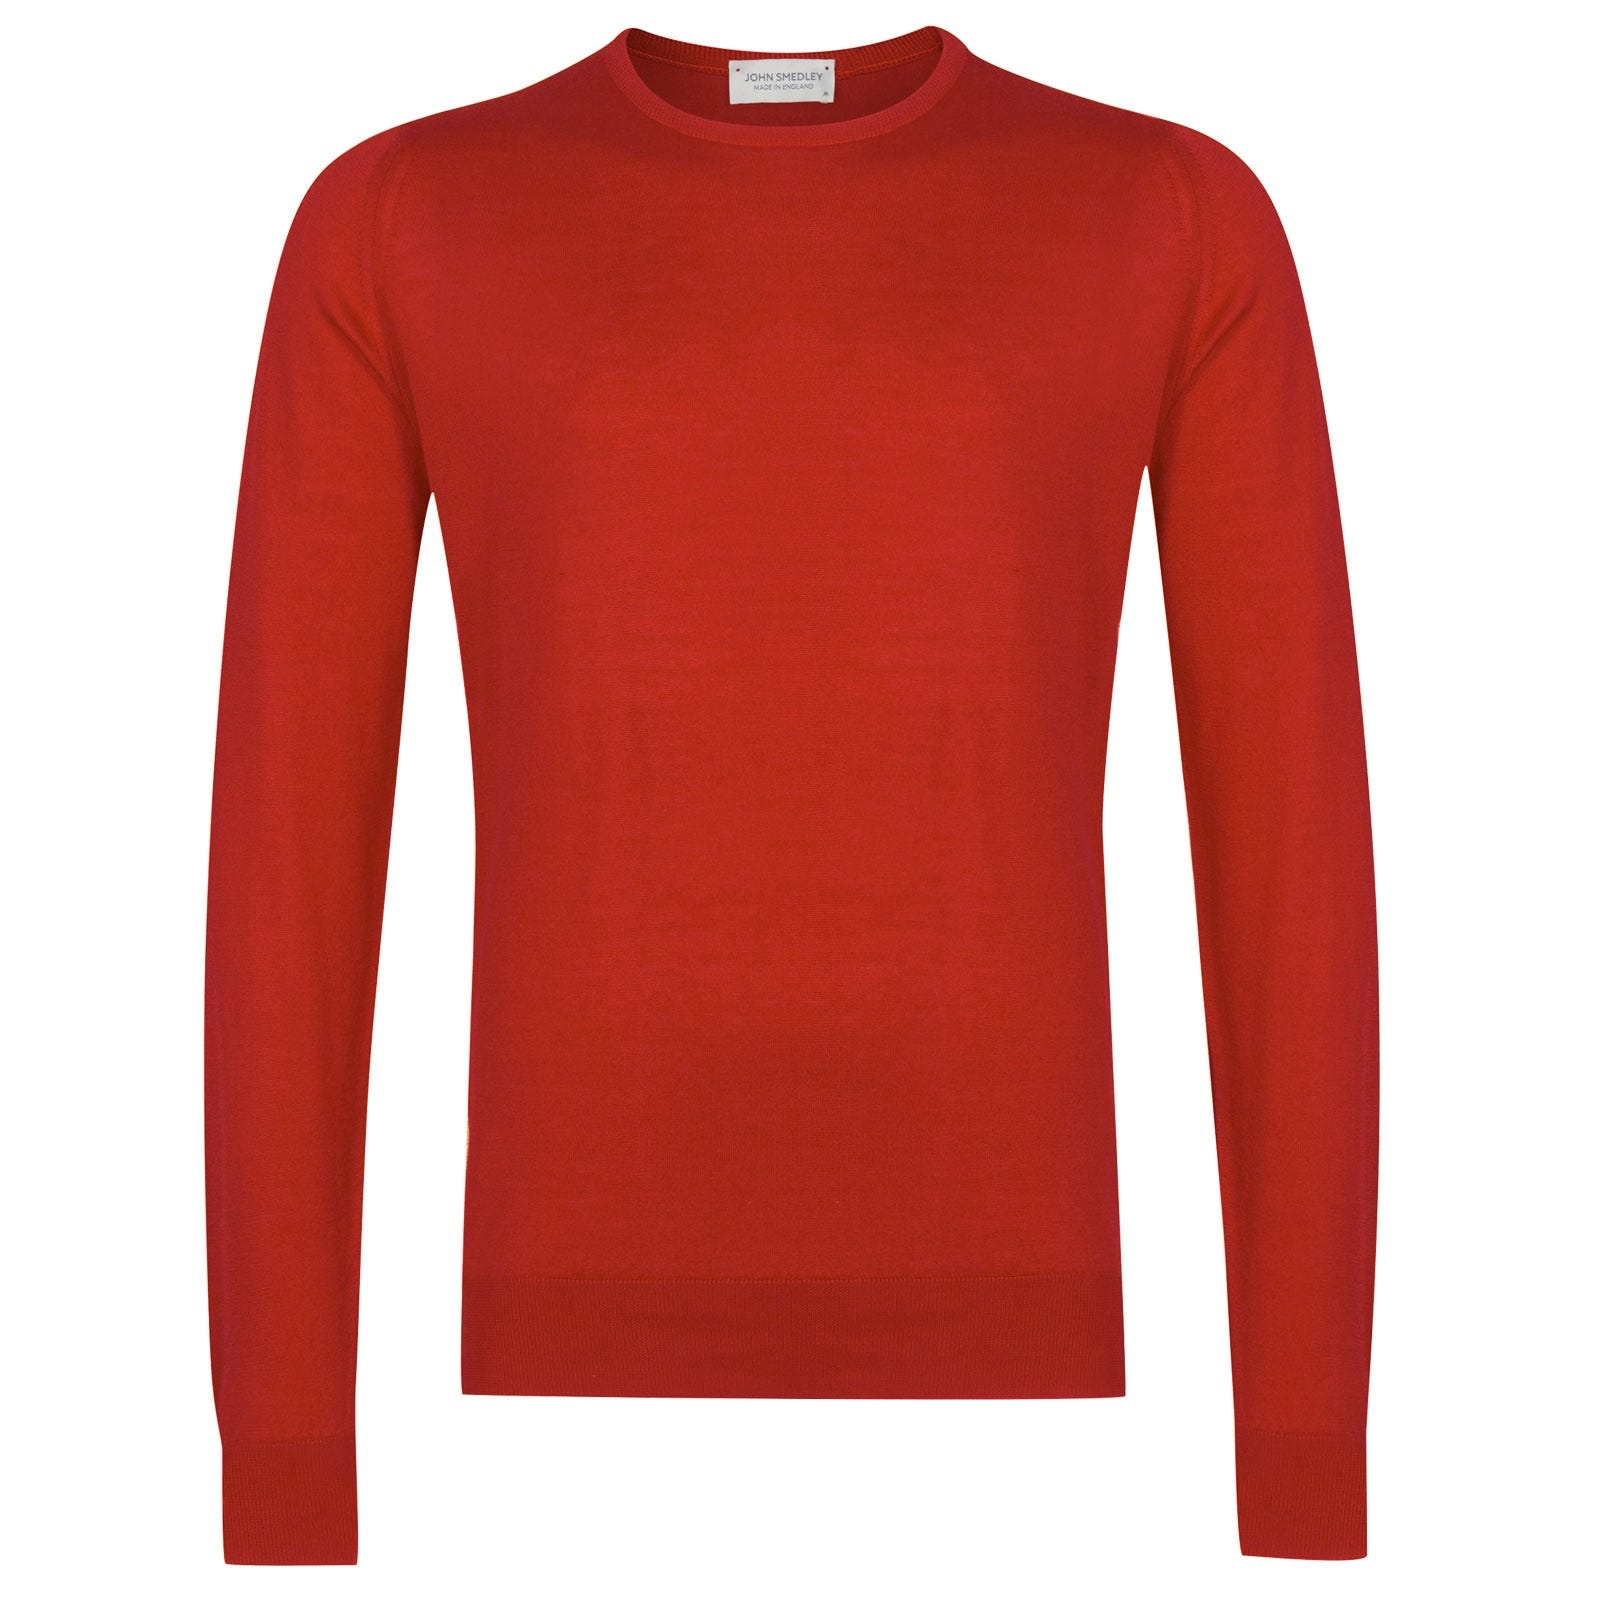 John Smedley Hatfield in Red Admiral Pullover-XXL